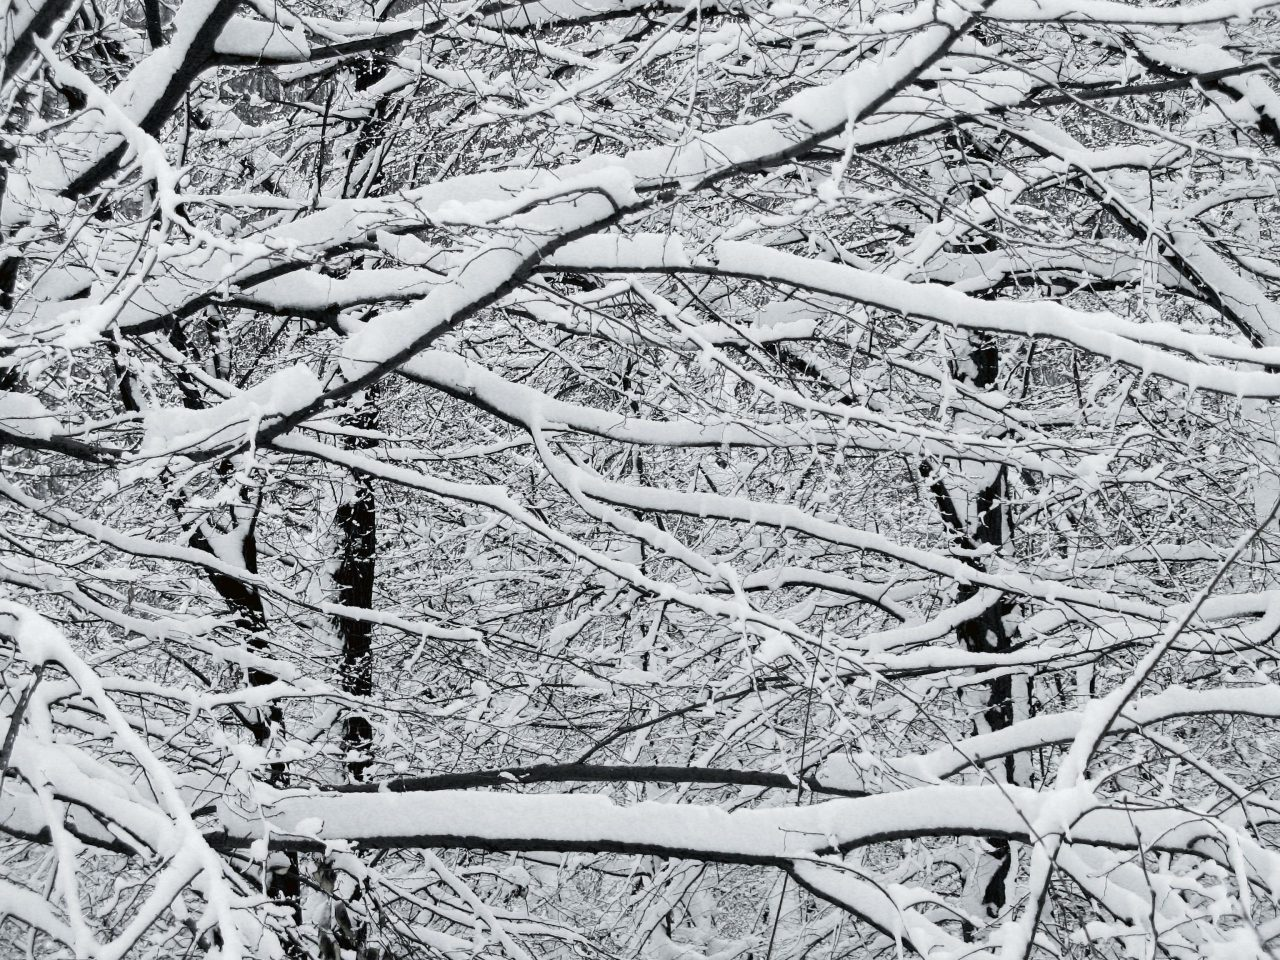 Picture of a forrest with snow and a lot of branches everywhere